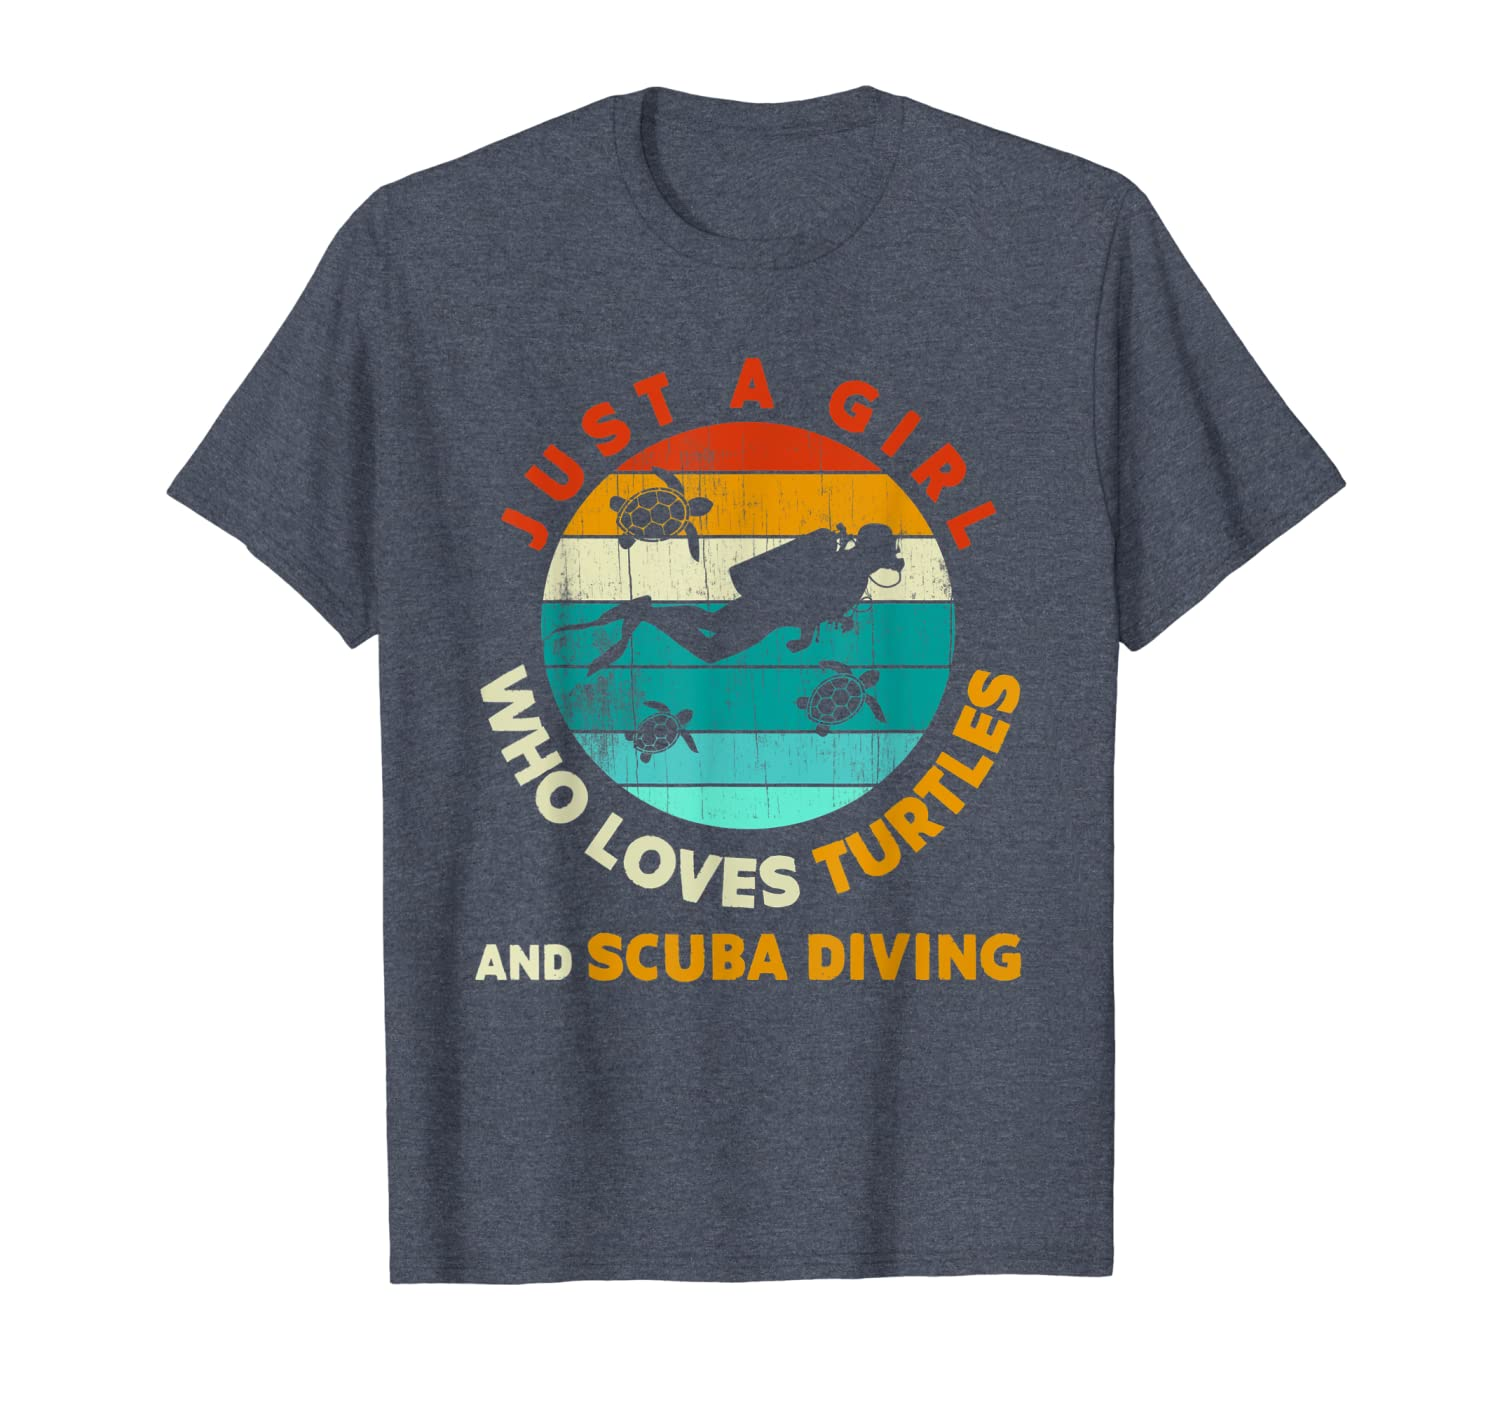 Scuba Diver Gift- A Girl Who Love Turtles And Scuba Diving T-Shirt Unisex Tshirt